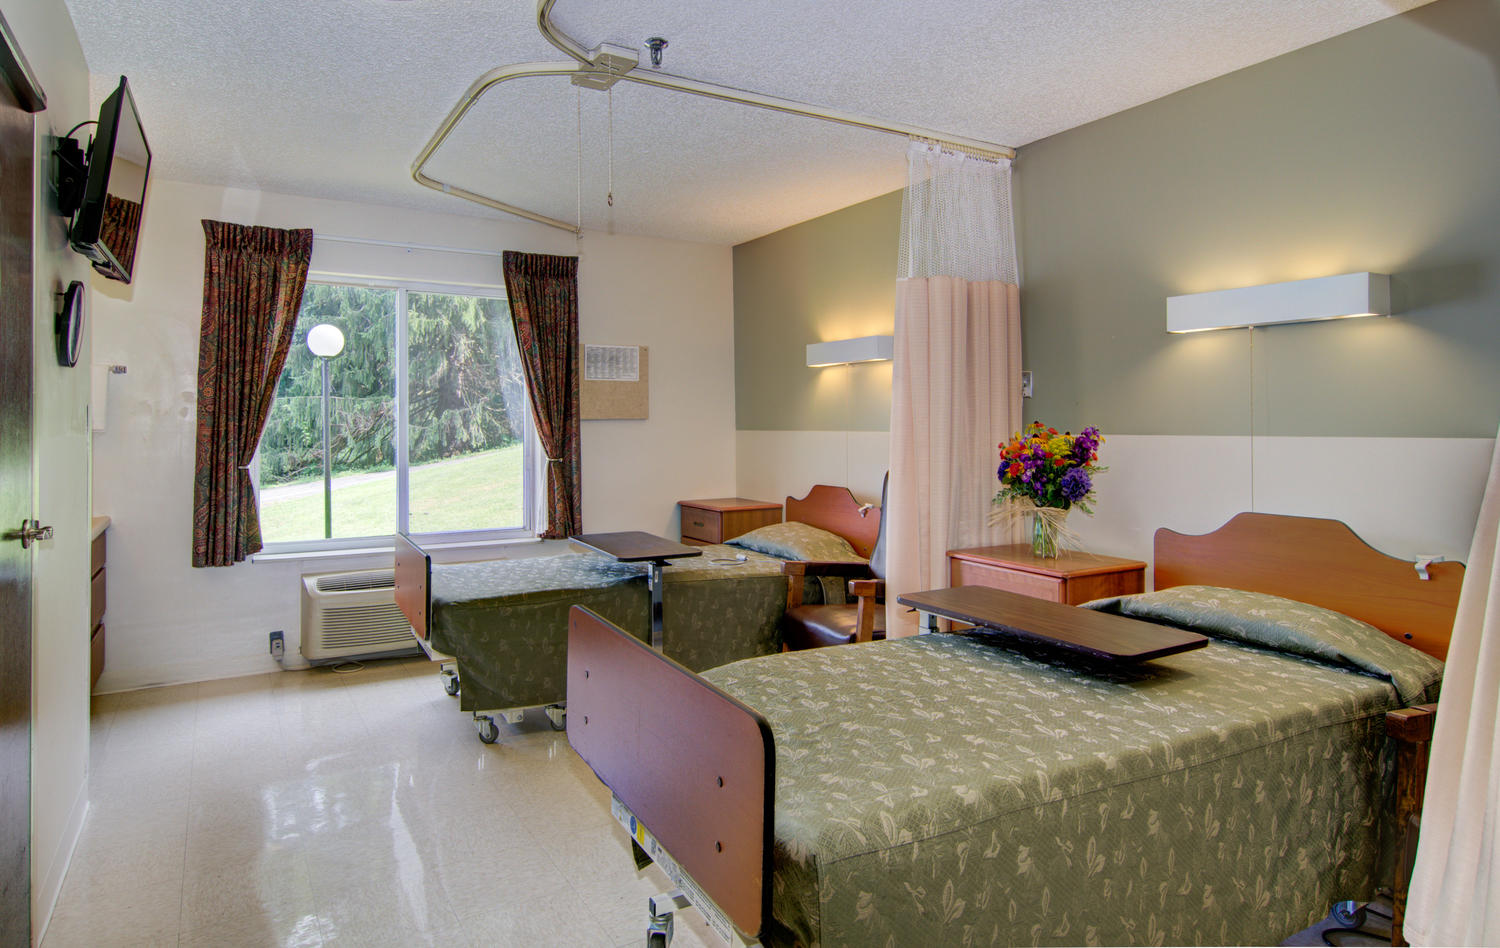 Stonerise Wellsburg patient room with two beds and flowers